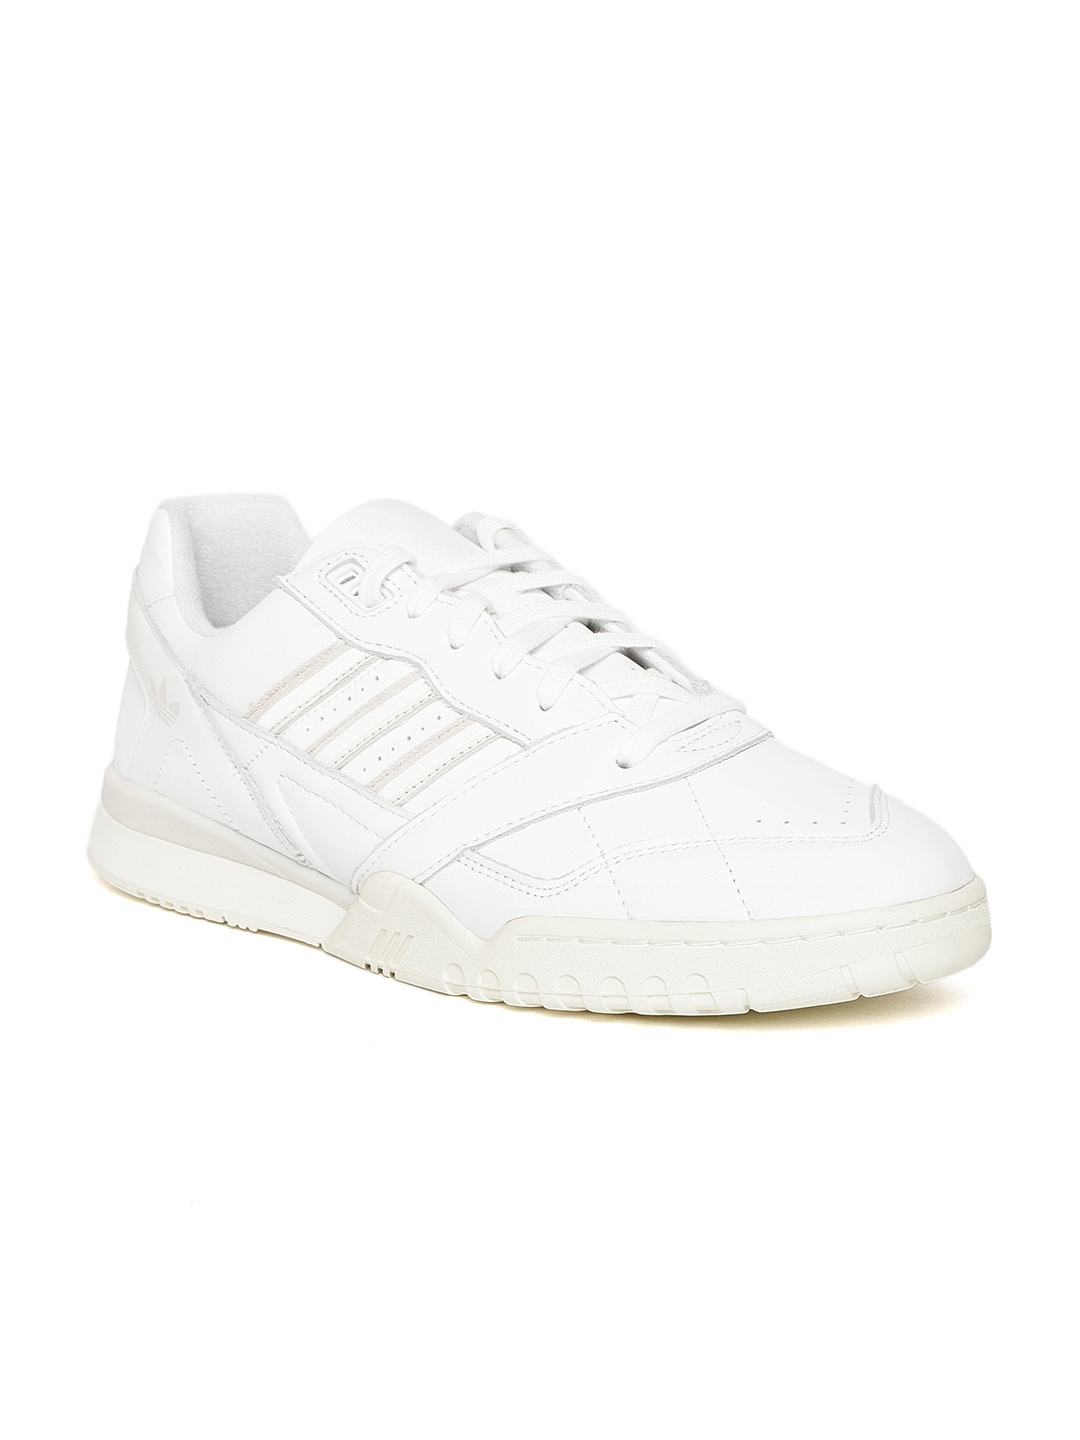 official photos 9858f 51bdd ADIDAS Originals Men White A.R. TRAINER Leather Sneakers